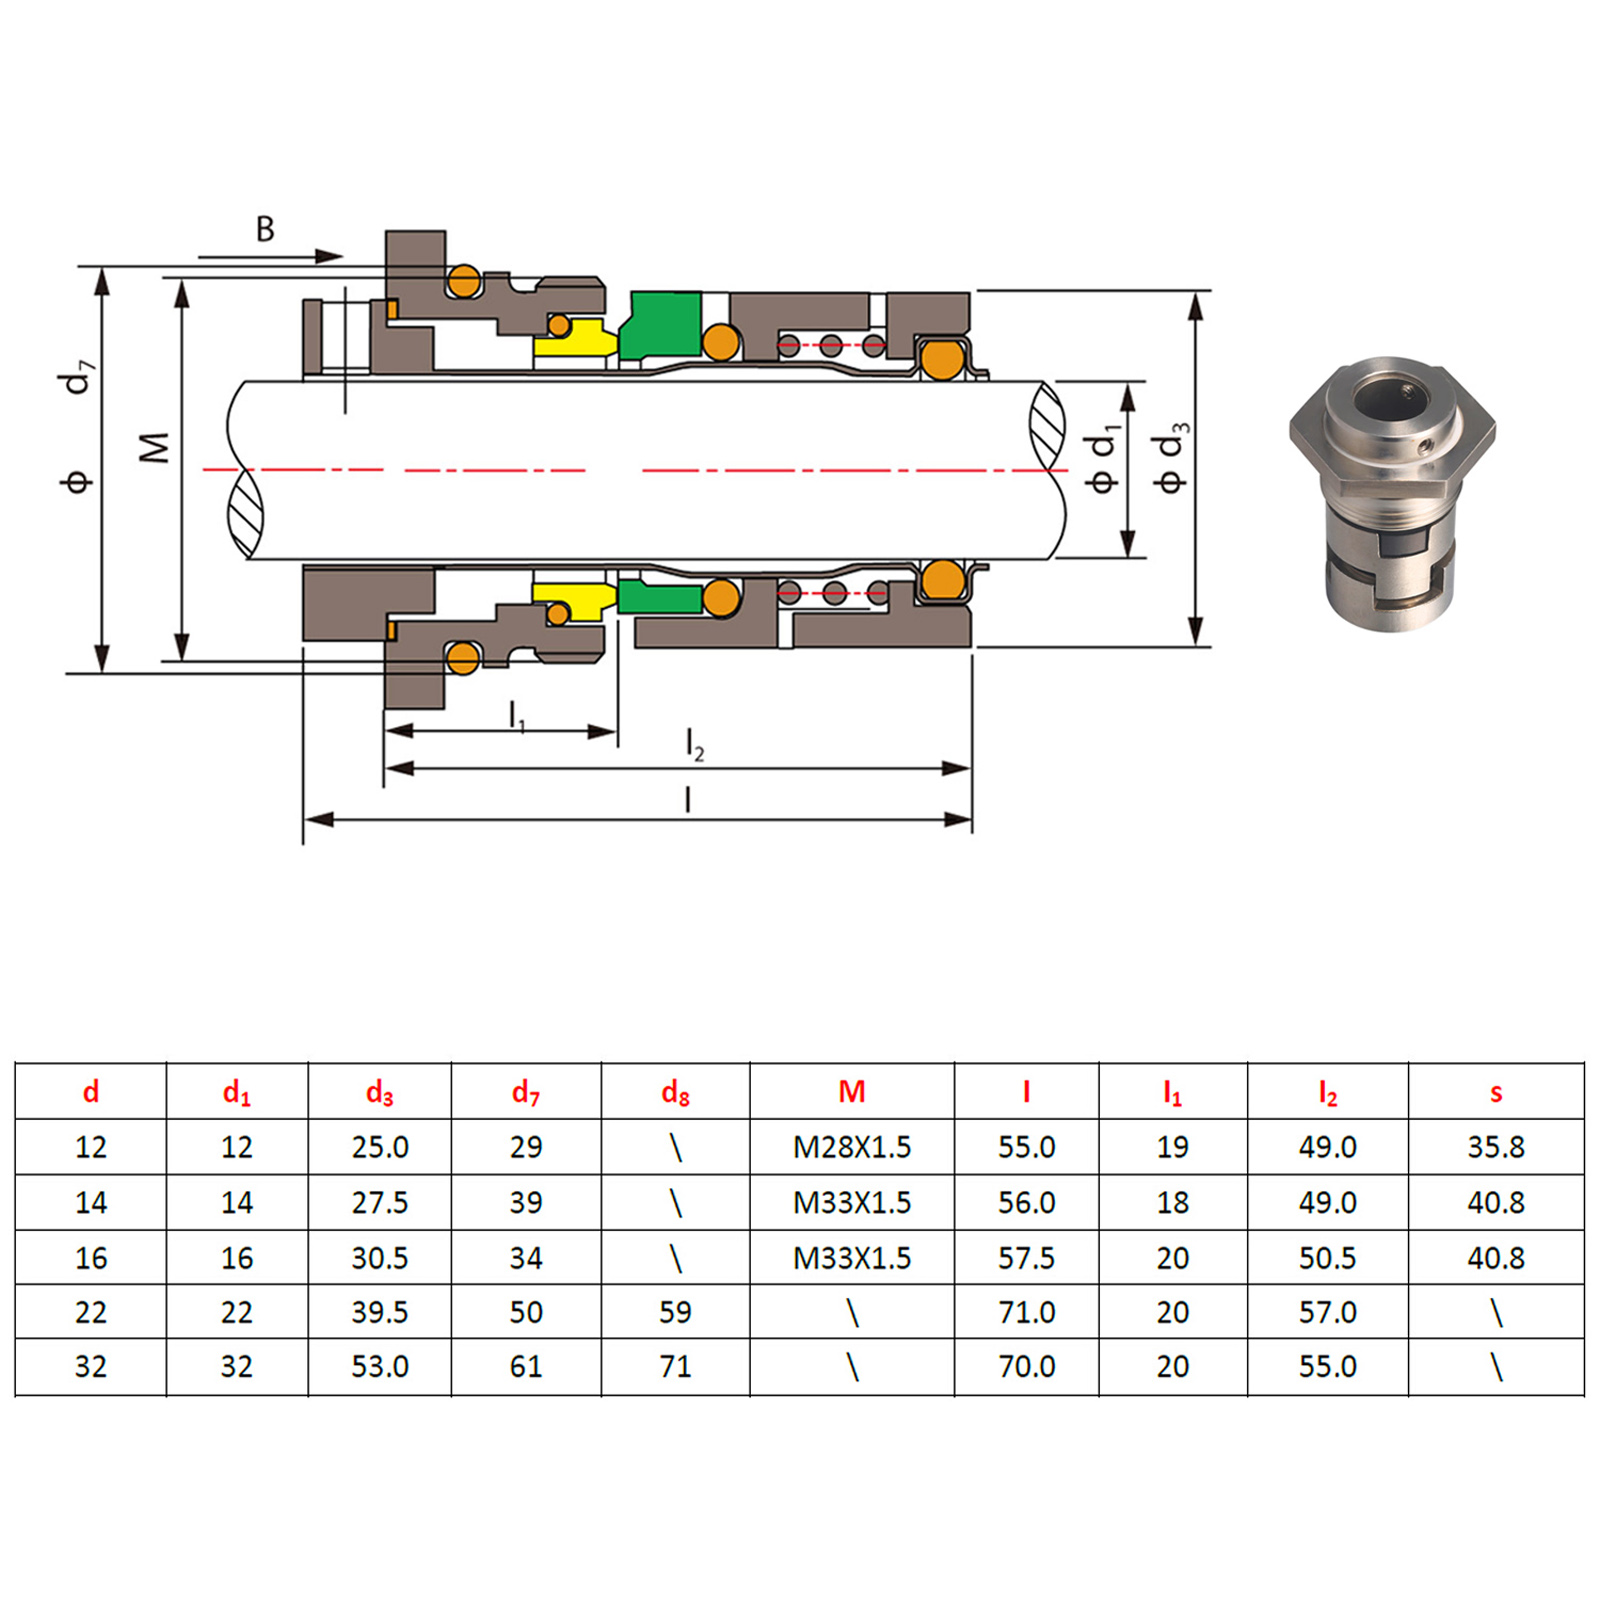 grundfos cr pump wiring diagram alpine ktp 445u gogoal mechanical seal shaft size 12mm cartridge